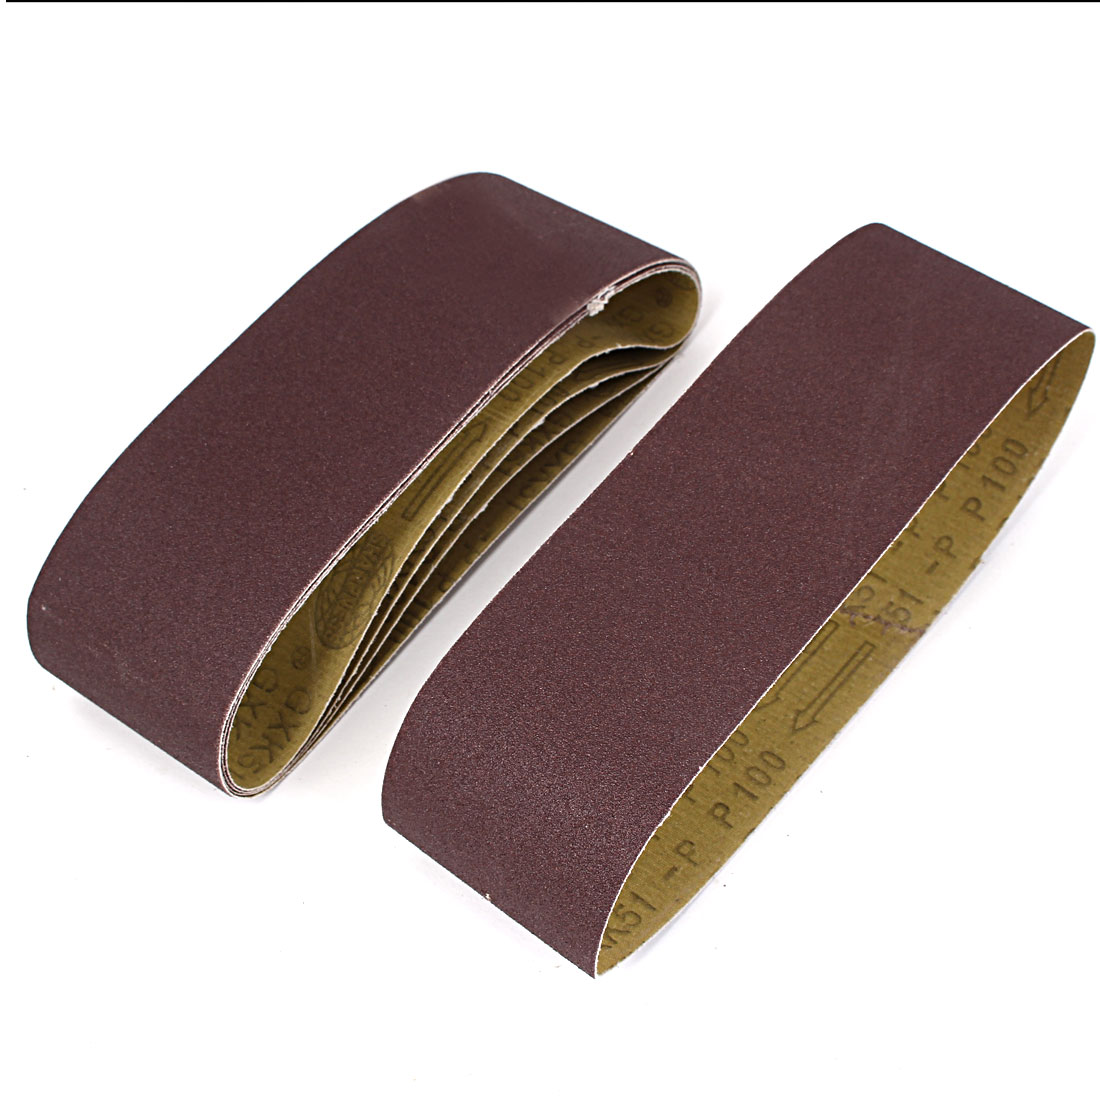 Woodworking 533mmx75mm 100 Grit Abrasive Sanding Belt Sandpaper 5pcs